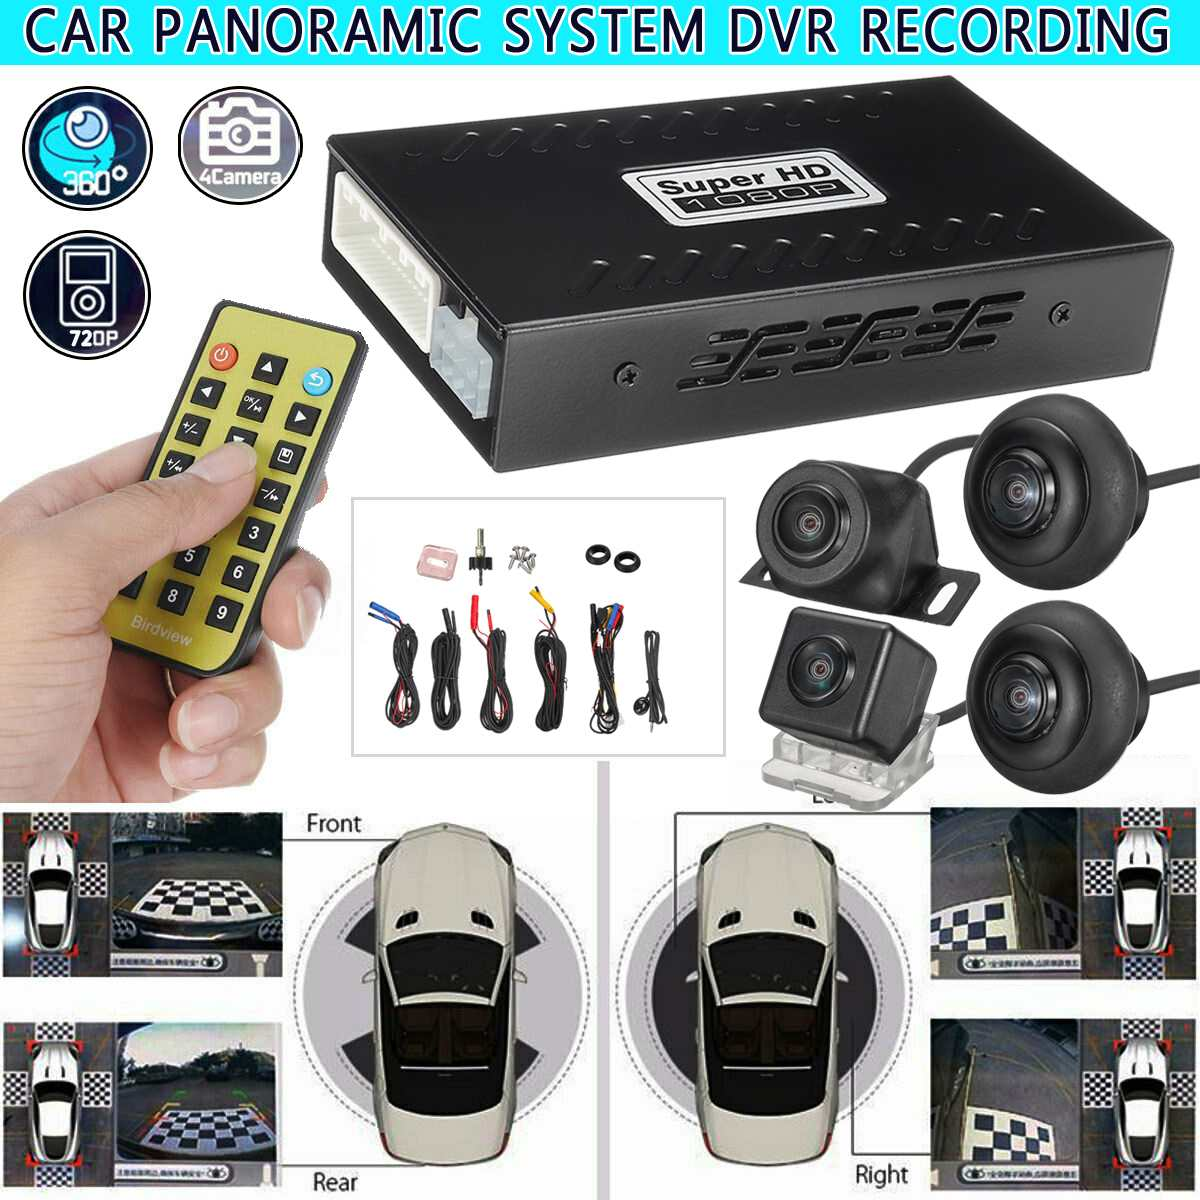 360 Degree Car Surround View System Auto Bird View Panorama DVR System 4 Camera HD 1080P Car DVR Recorder 2D Parking Assistance